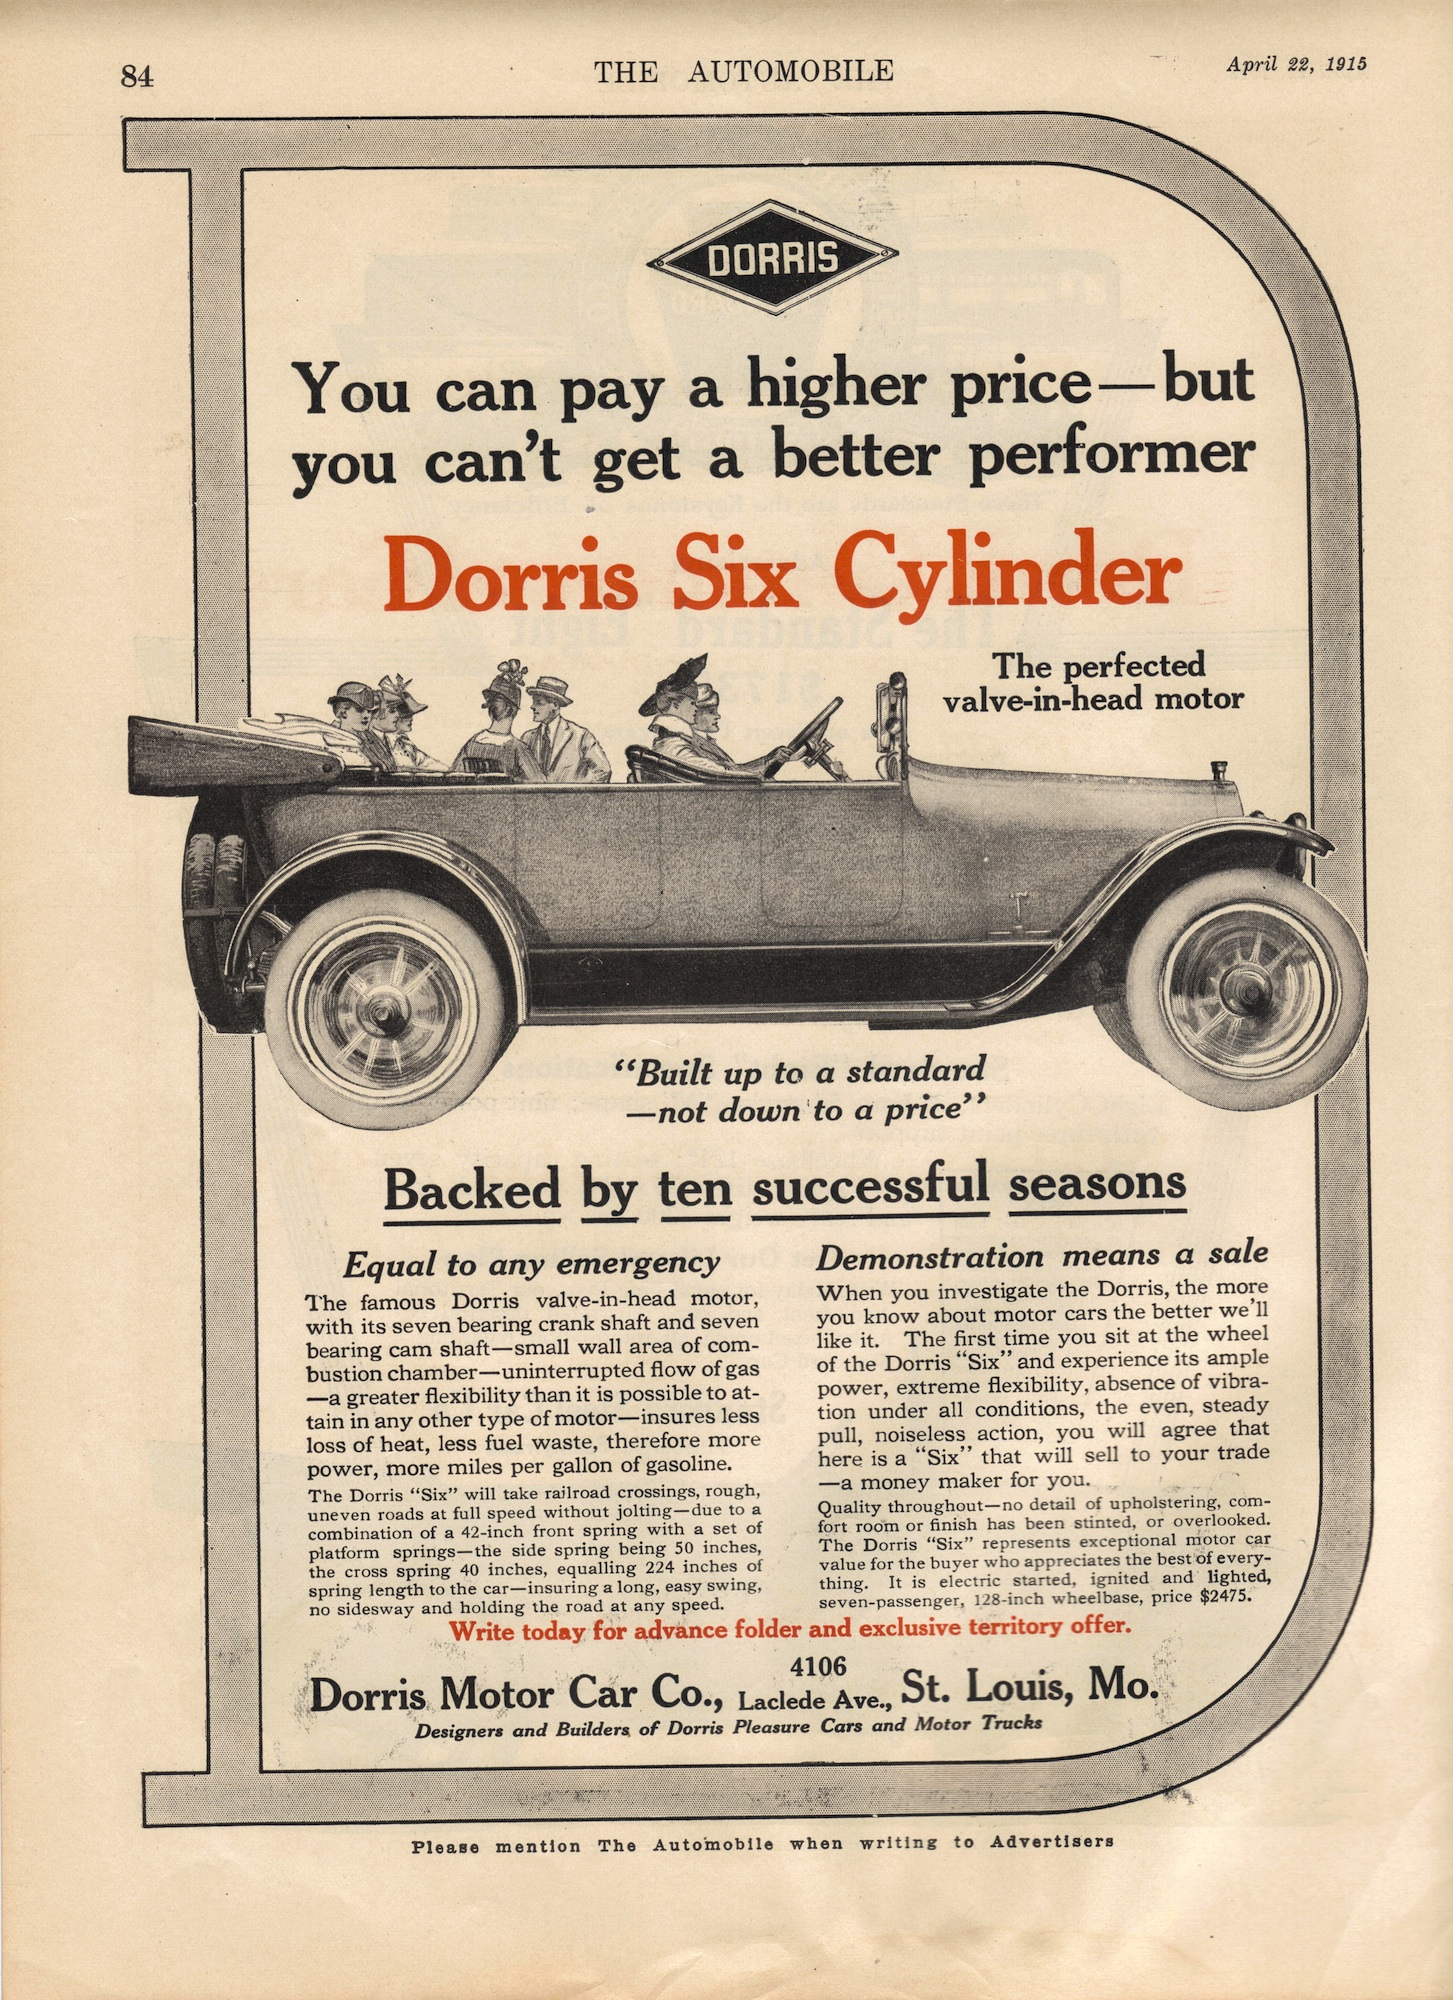 1915%20Dorris_TheAutomobile_4_22_1915_Pg_84.jpg